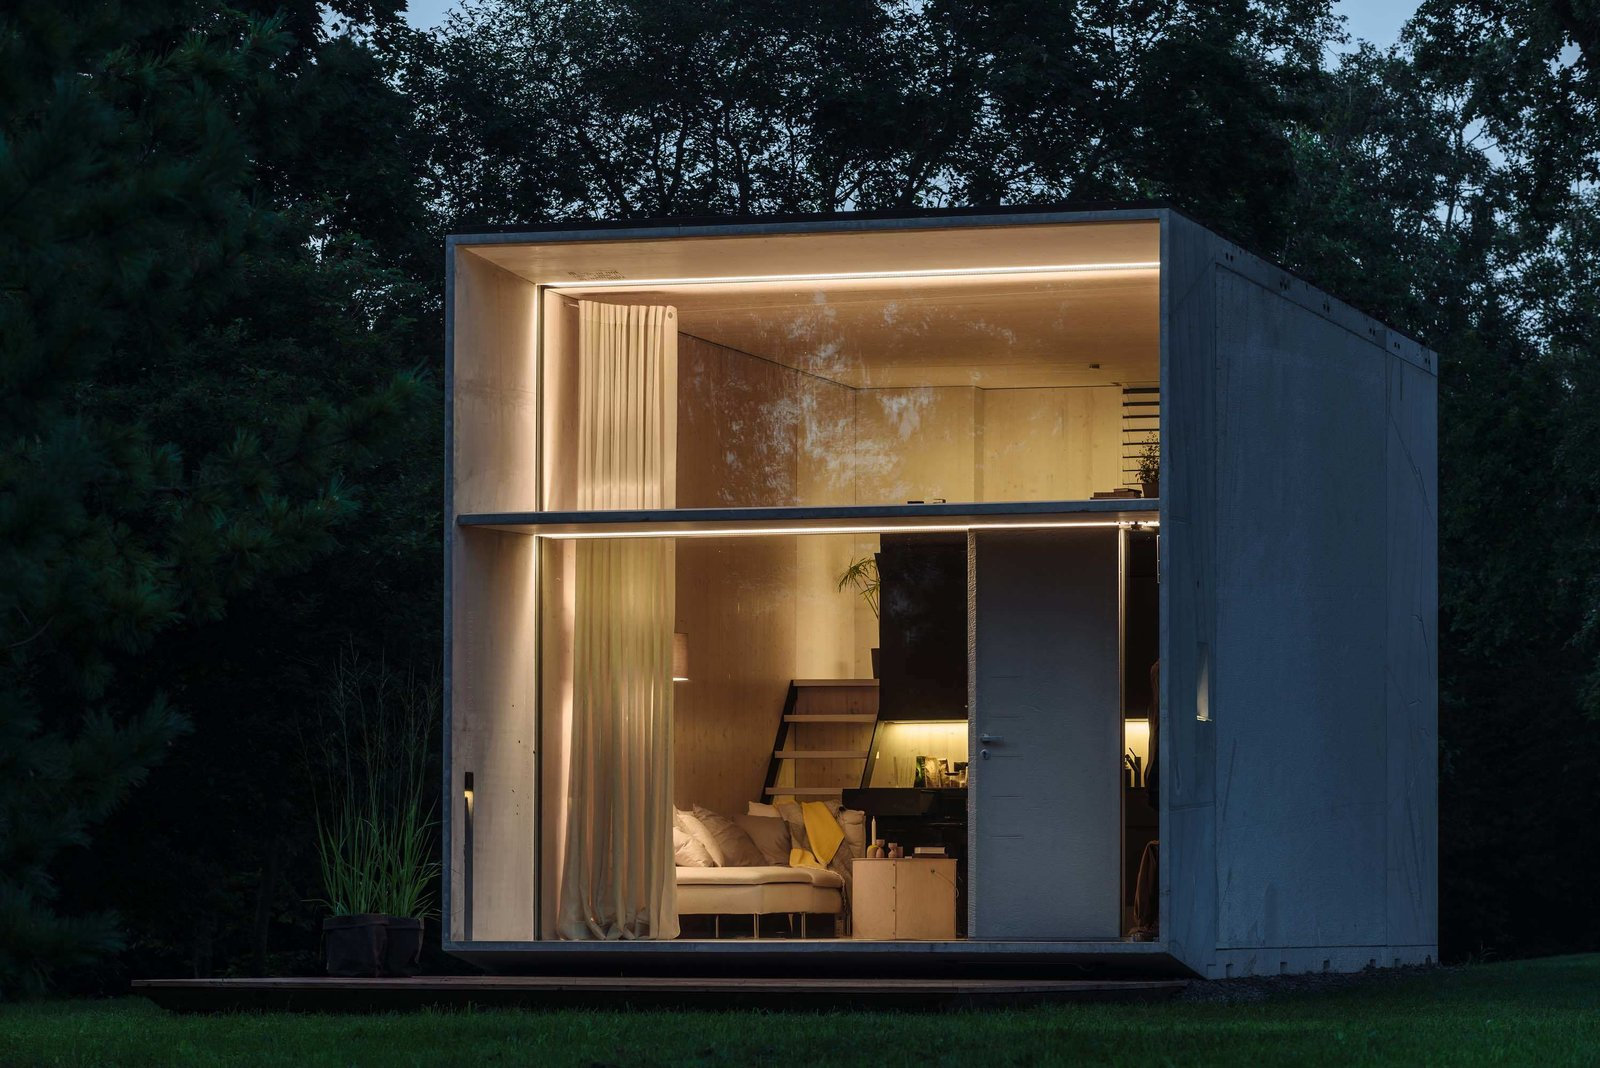 """Exterior, Flat RoofLine, Metal Siding Material, Metal Roof Material, Prefab Building Type, and Tiny Home Building Type Estonian design collective Kodasema launched this 269-square-foot micro-home, which can be built in less than a day. The structure, which does not require foundations, can be moved on the back of a lorry, and aims to encourage a self-build culture and better use of empty plots of land in the UK """"The simple yet effective design could help alleviate the pressures of the housing crisis on local authorities, providing temporary homes or workspaces on empty sites,  Photo 3 of 8 in 7 Modern Modular and Prefabricated Homes in the UK"""